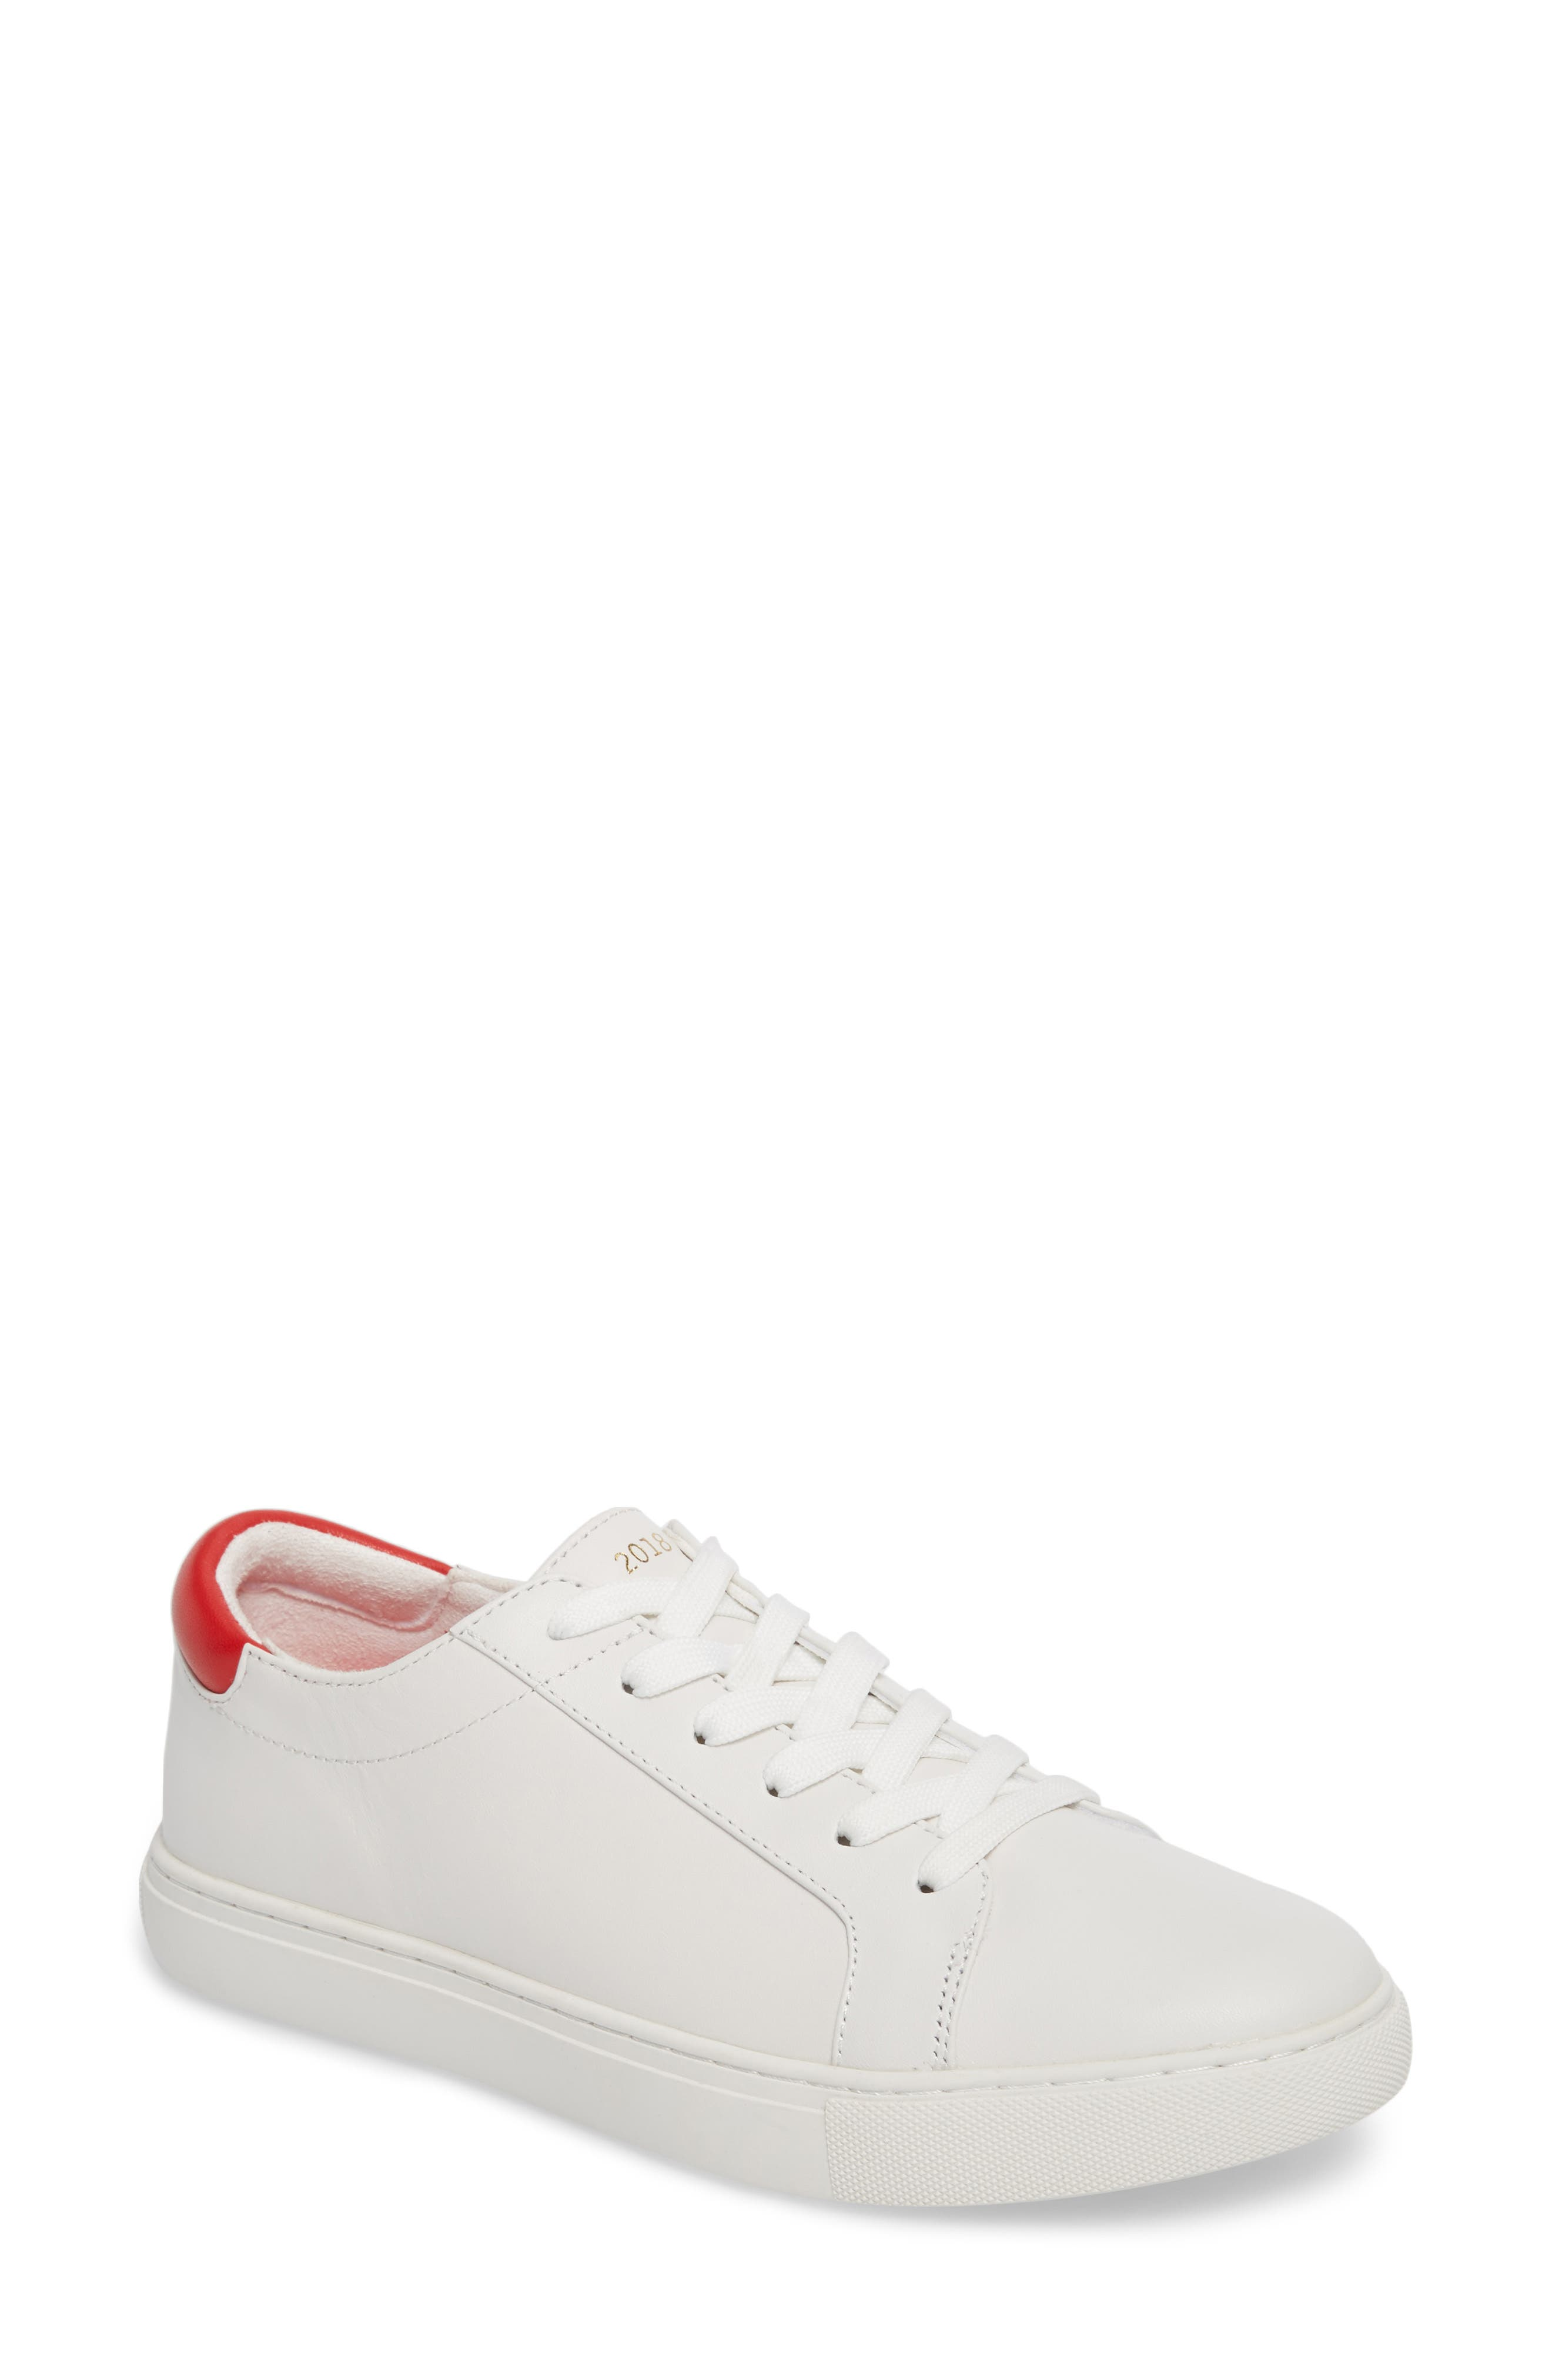 Cam Low Top Sneaker,                             Main thumbnail 2, color,